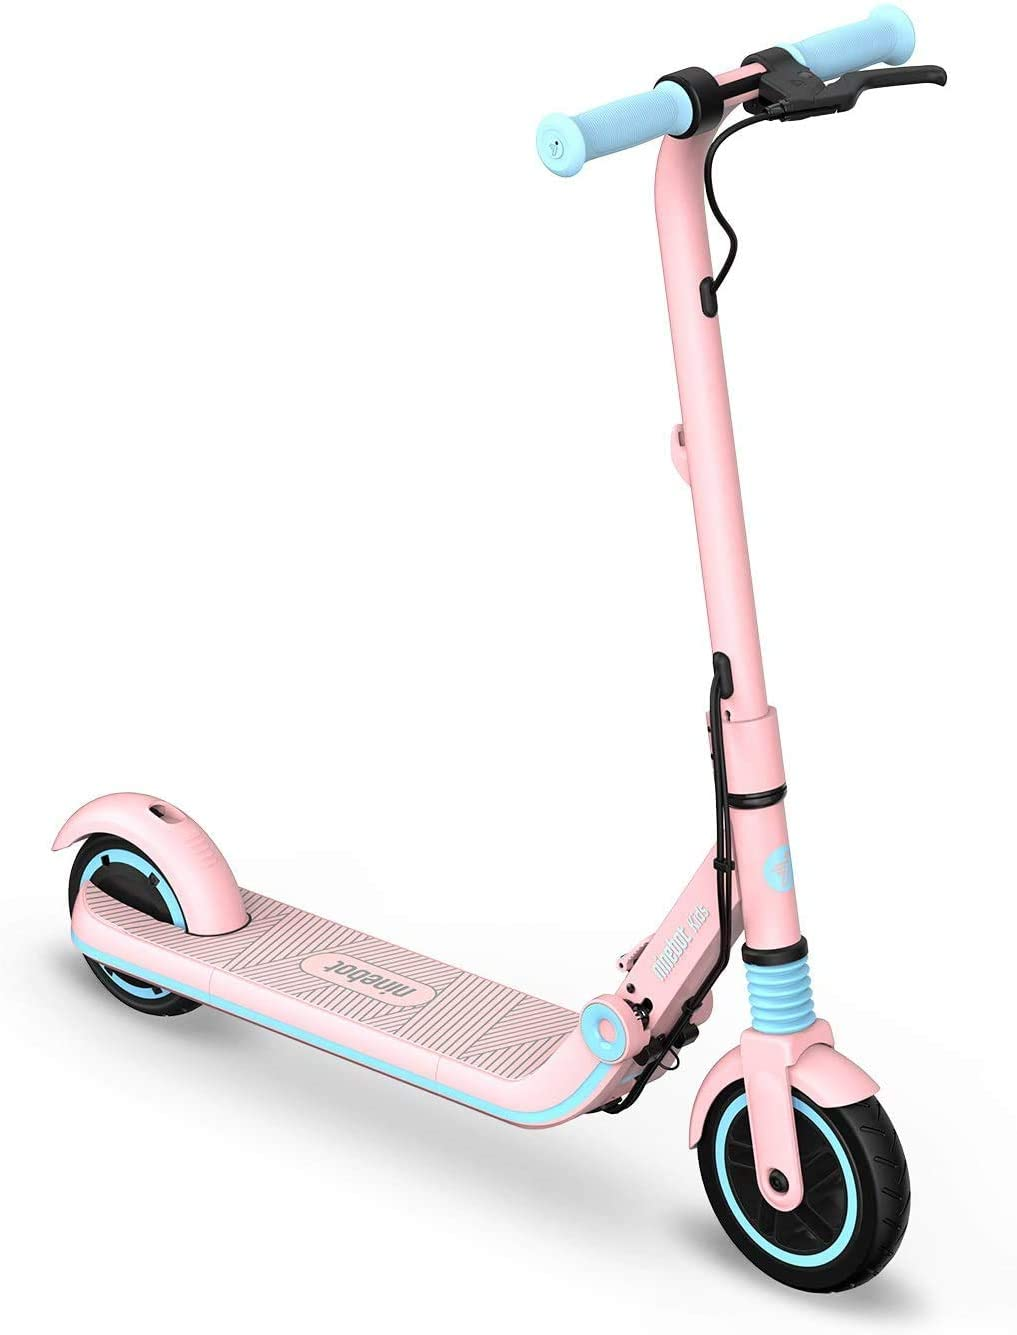 Ninebot eKickScooter ZING E8 Electric Kick Scooter for Boys and Girls, Lightweight and Foldable - Pink